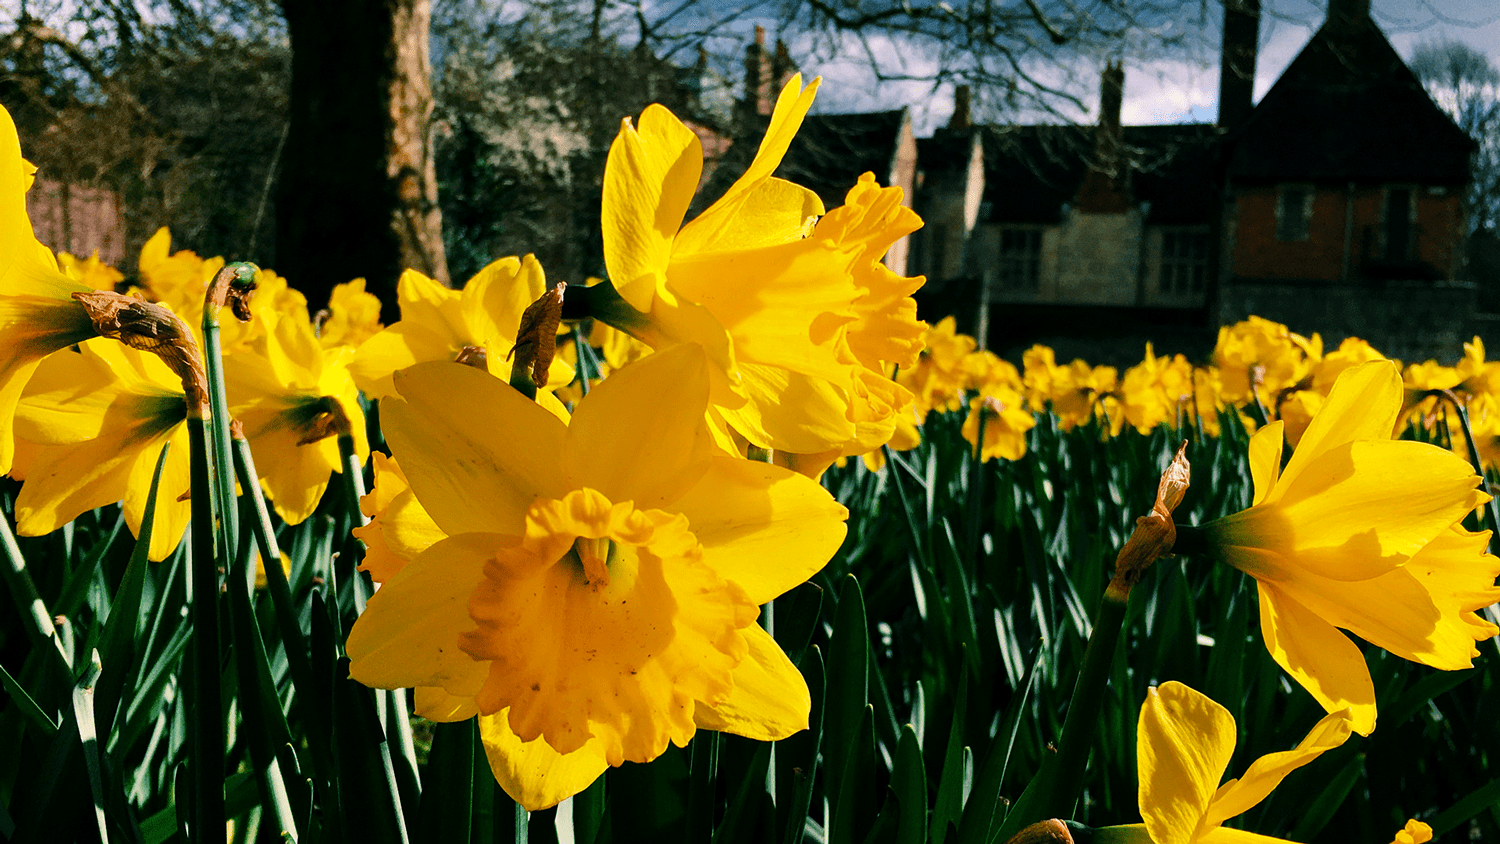 An image of some daffodils.